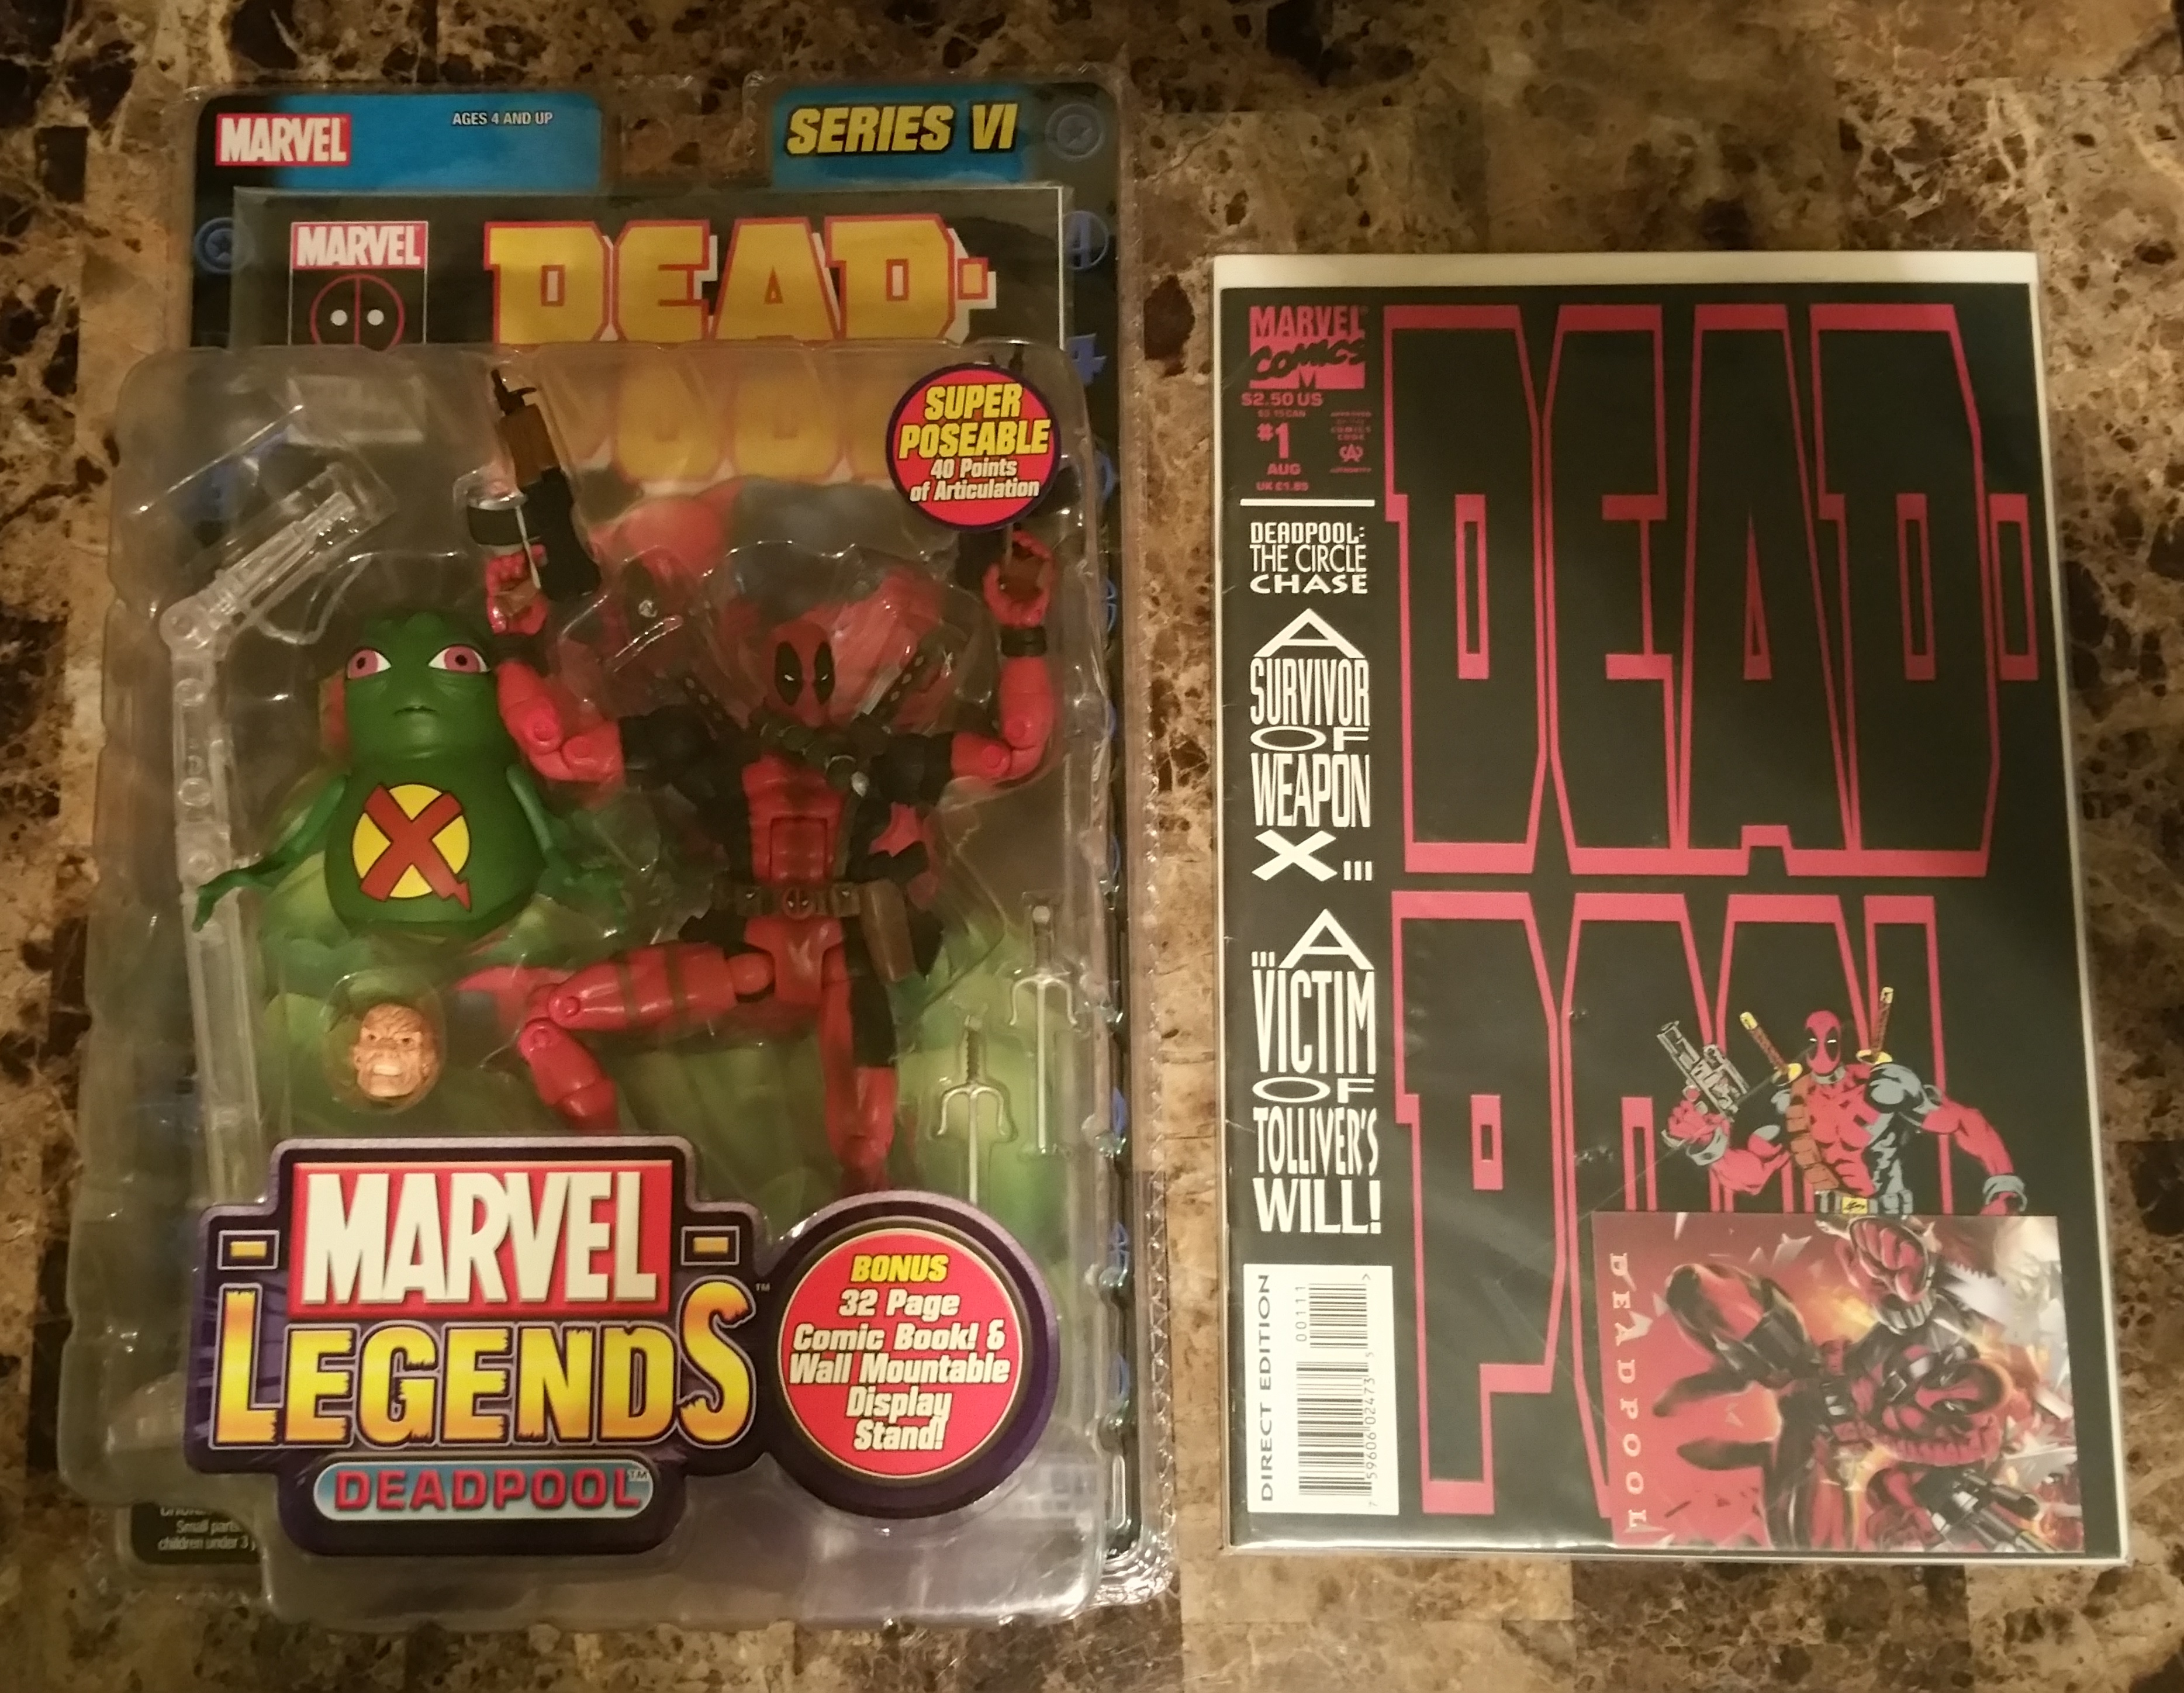 Marvel Legends: Series 6 (VI) Deadpool  BONUS: Deadpool: The Circle Chase #1 comic and 1994 Flair Po 8689271108 Toy Biz